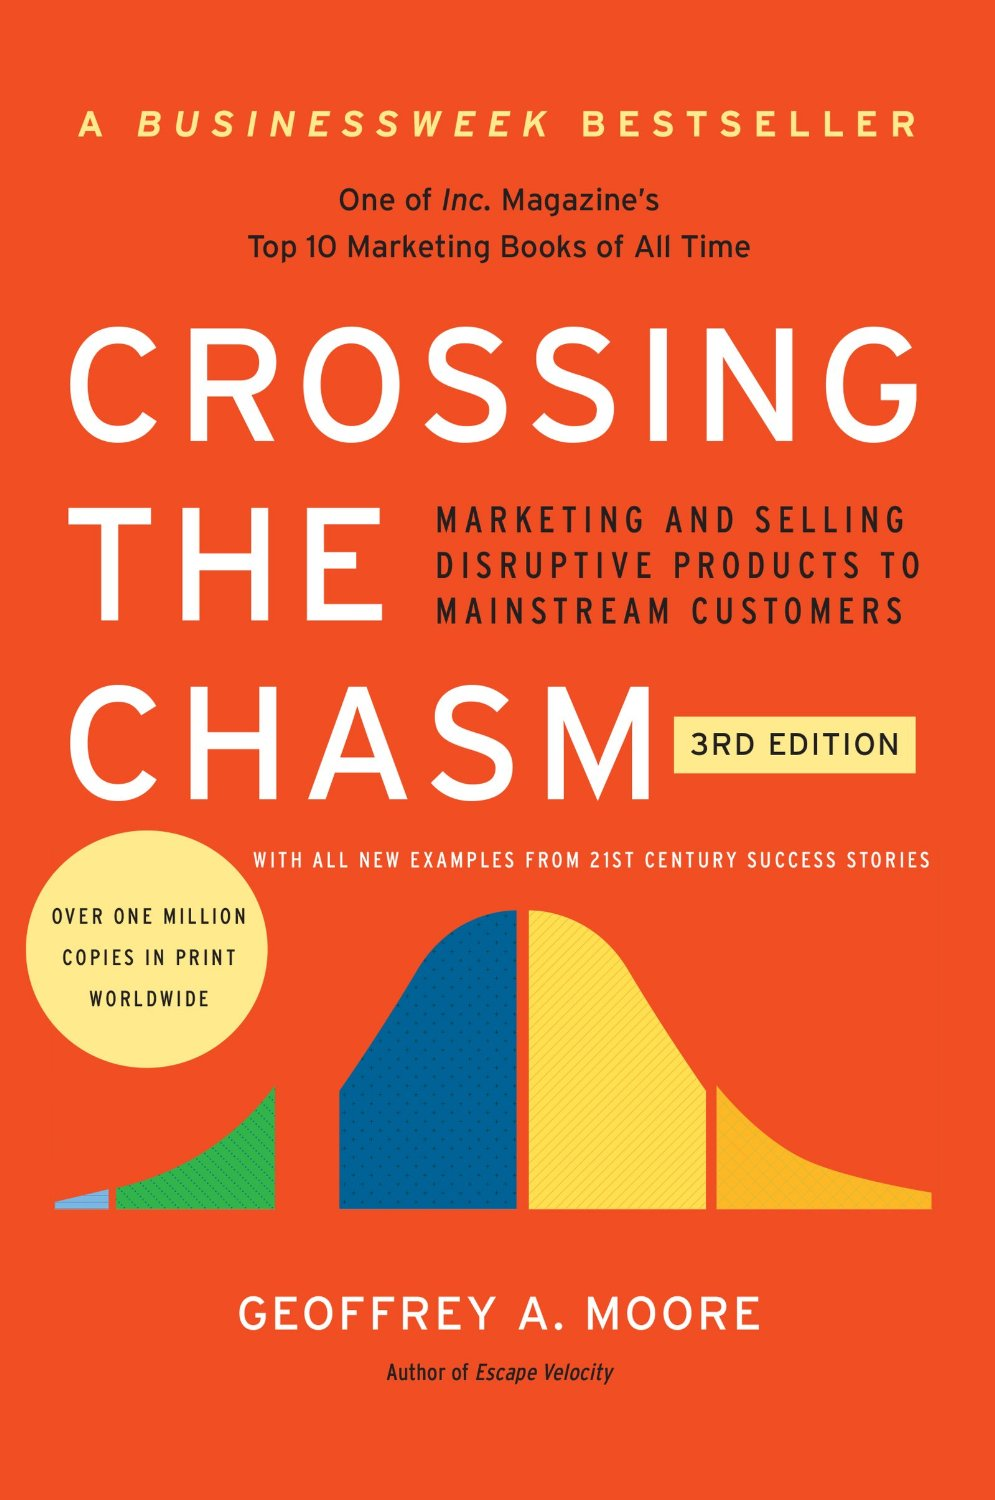 Geoffrey Moore's Crossing the Chasm book cover